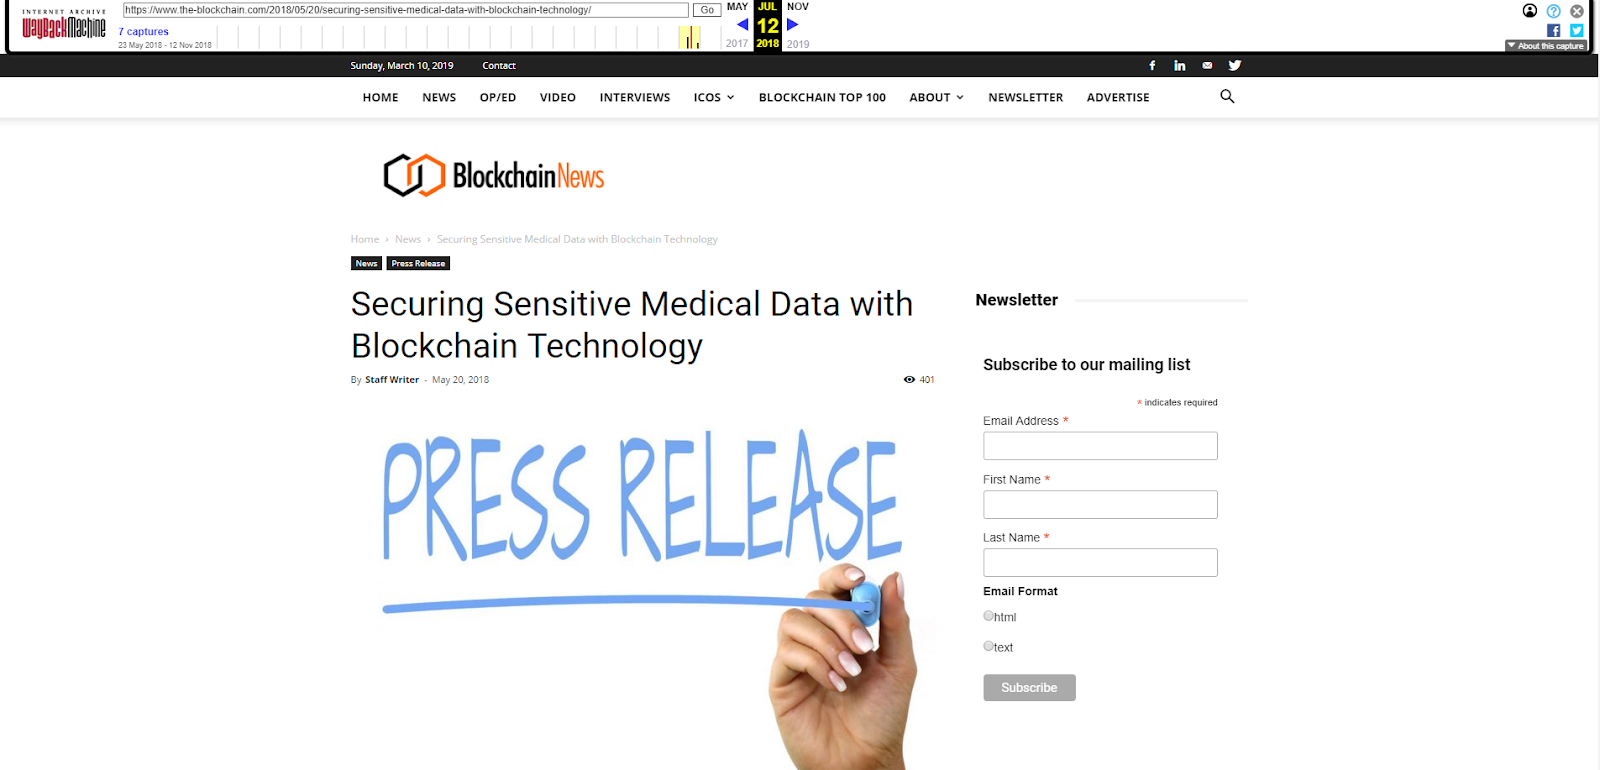 Securing Sensitive Medical Data with Blockchain Technology